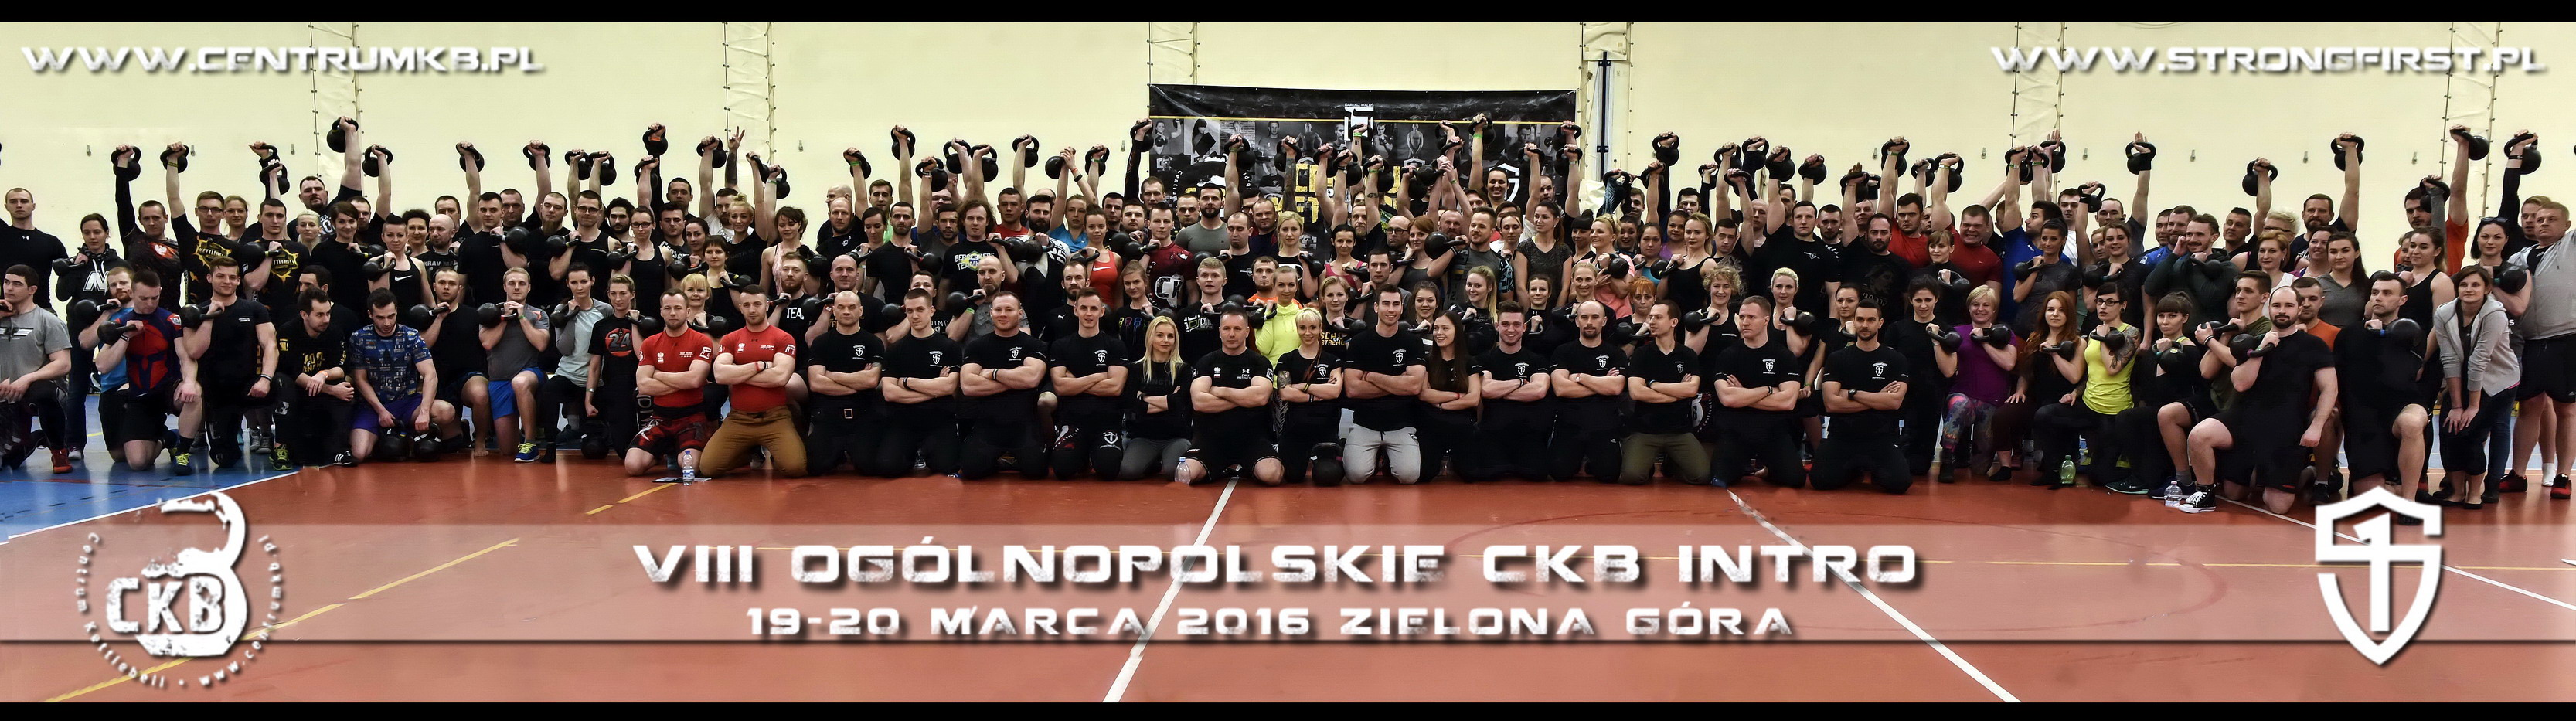 20160320_strongfirst_seminar_full